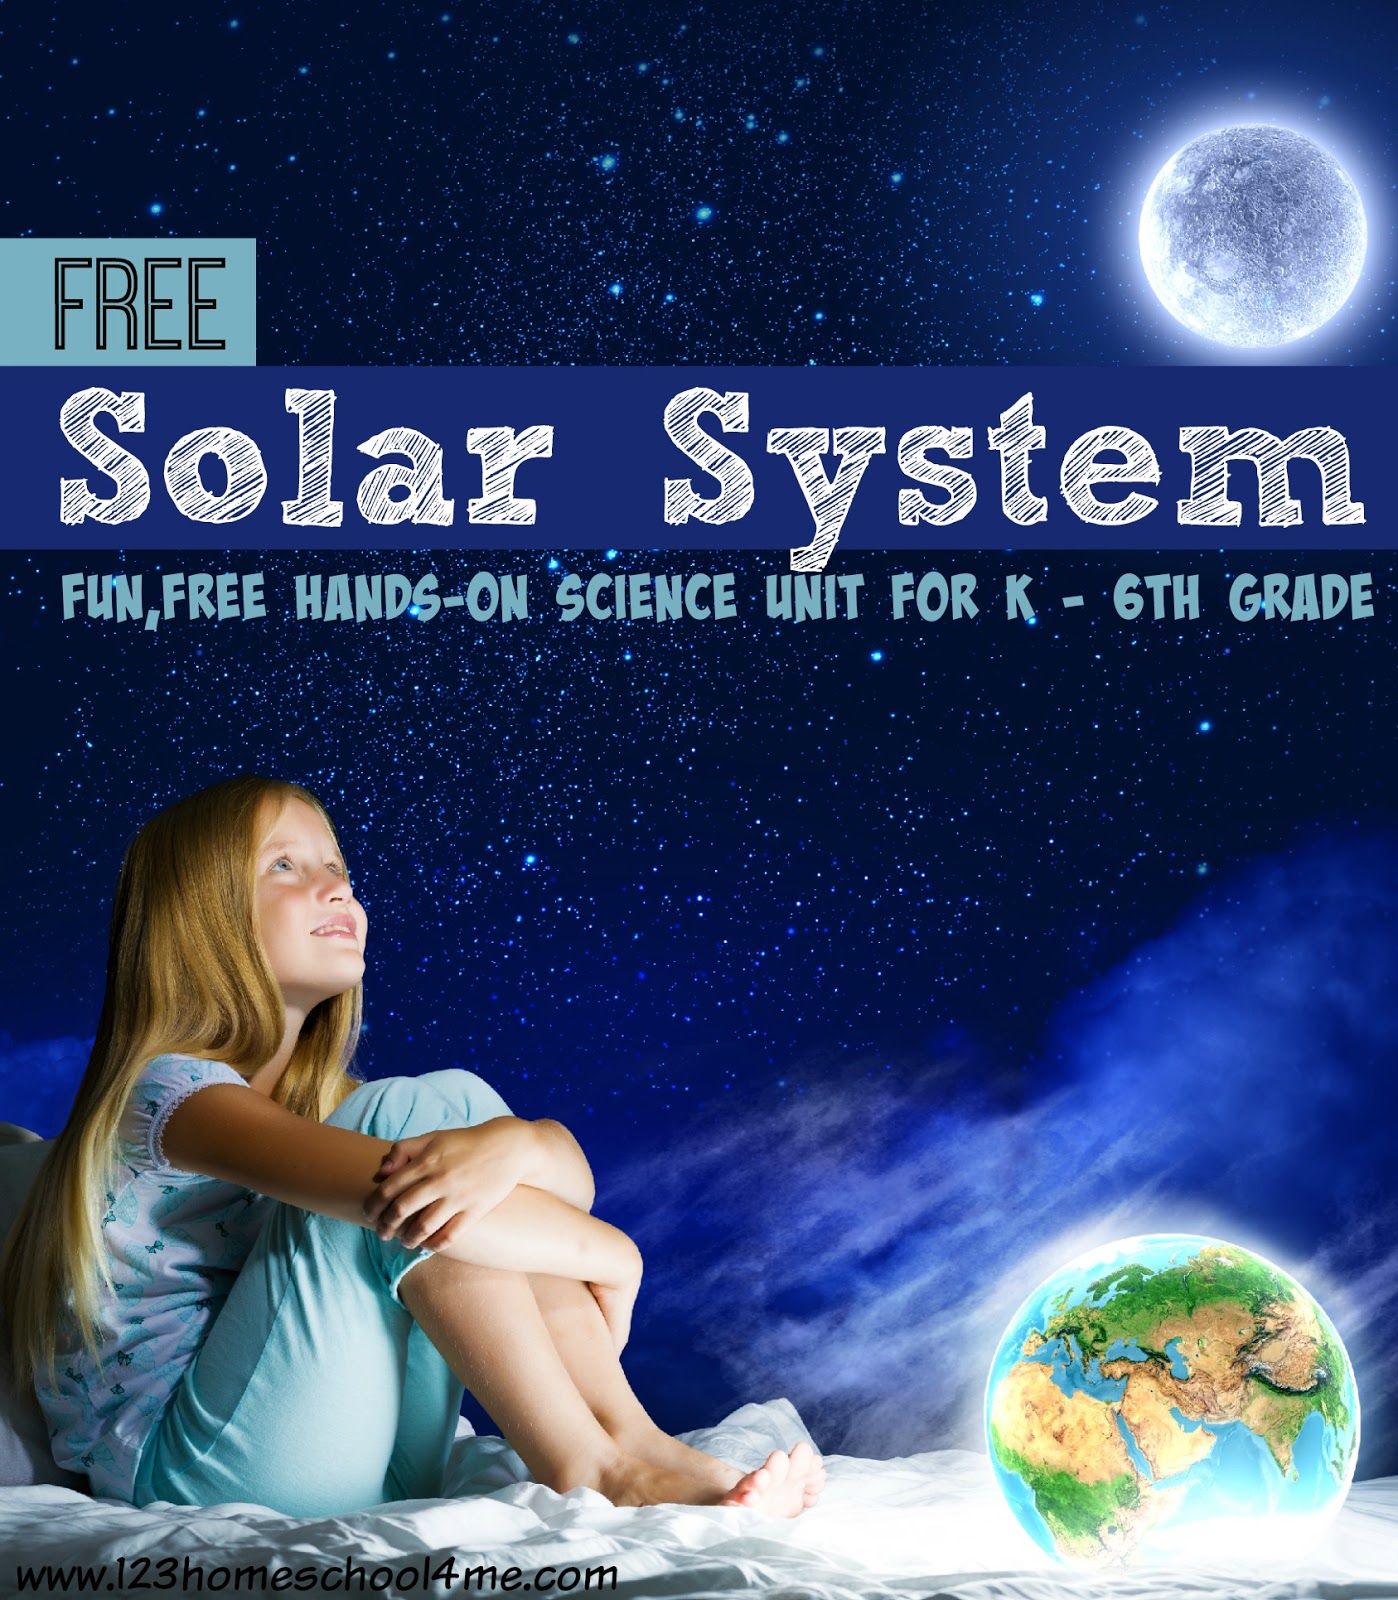 worksheet Solar System Worksheets Free 123 homeschool 4 me solar system fun free hands on science unit for k 6th grade elementary